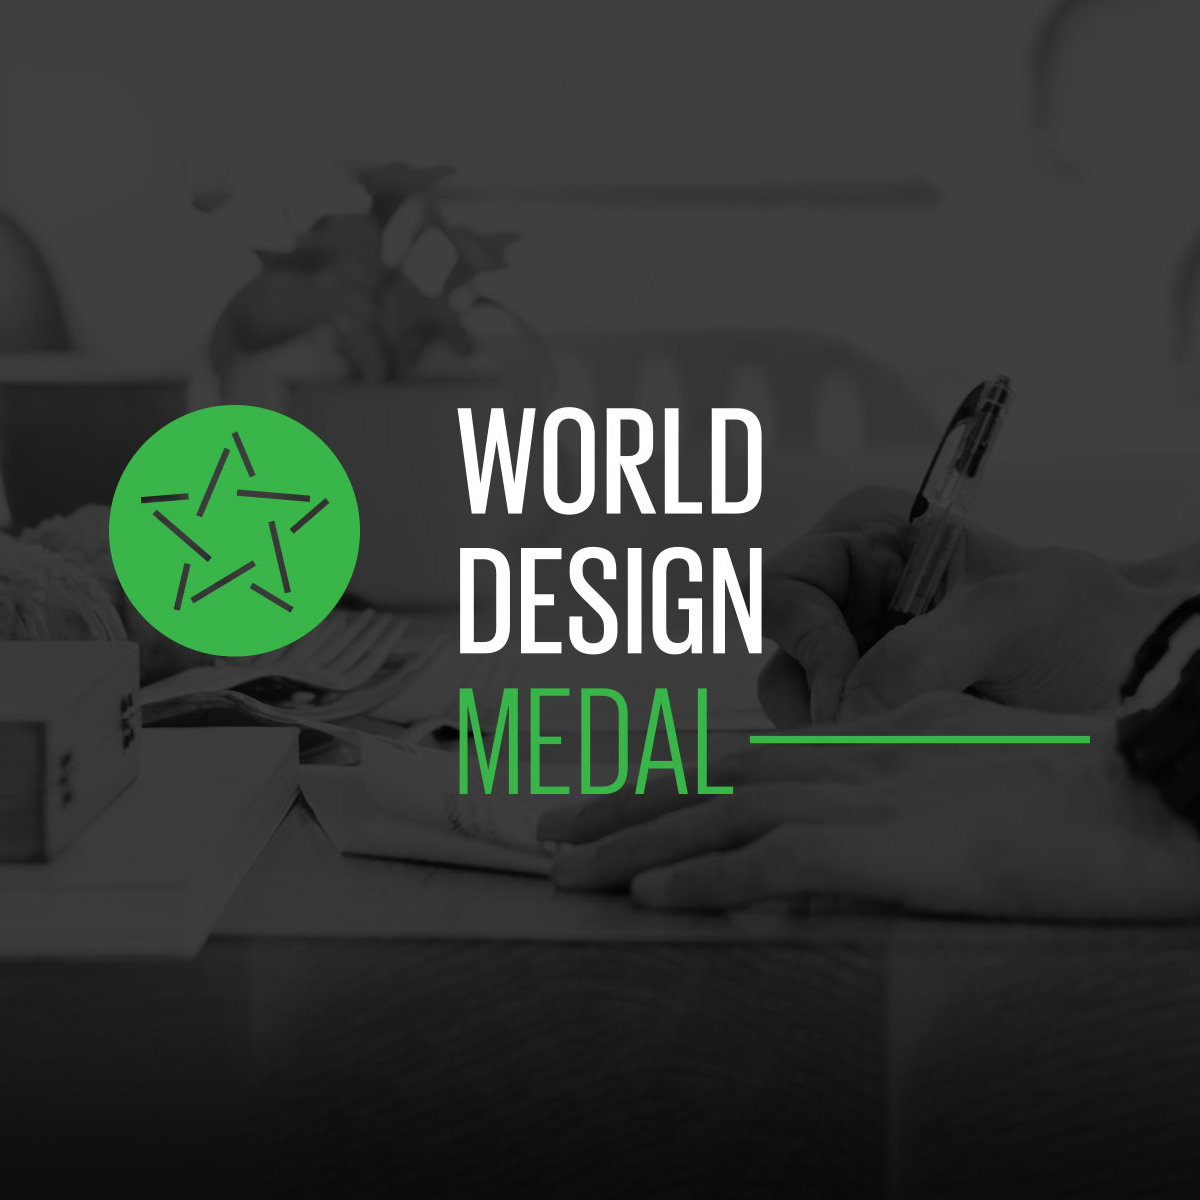 World Design Medal - Call for Nominations